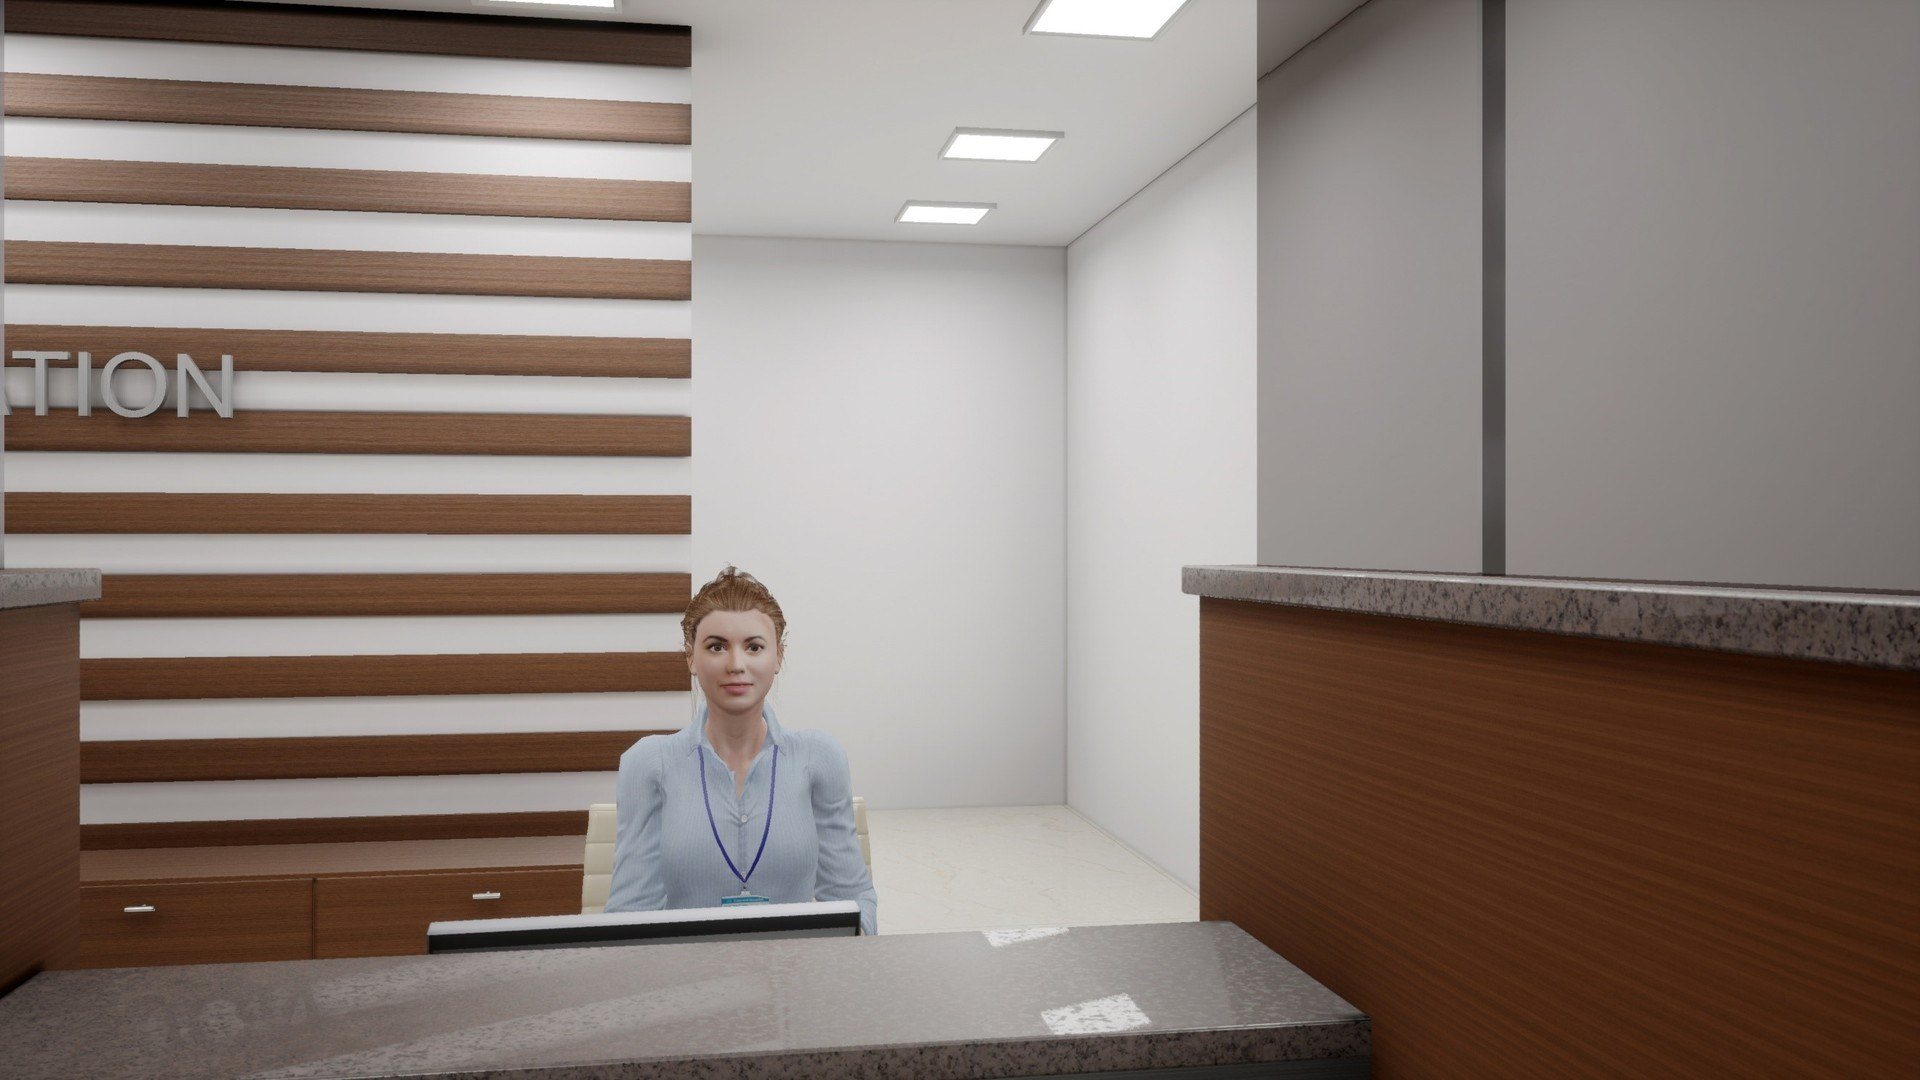 Figure 5: A virtual receptionist seated at her desk.